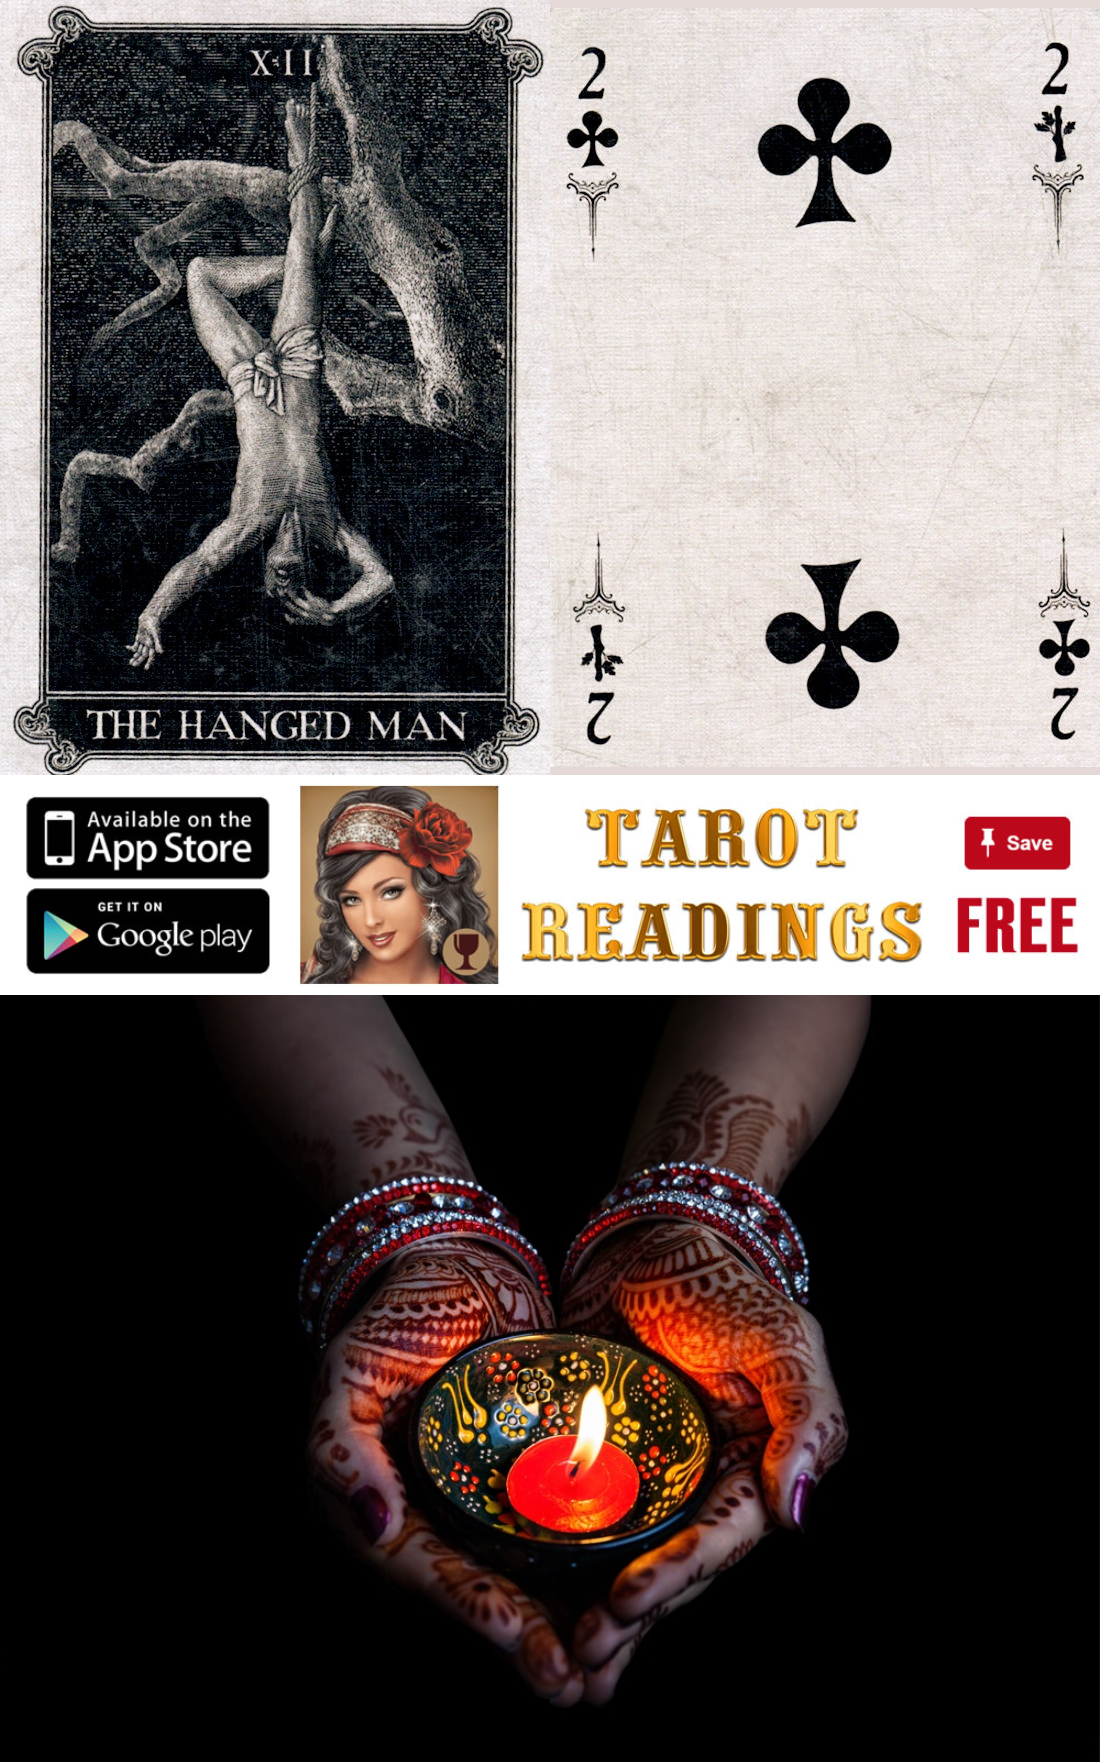 Get this free mobile app on your phone or tablet and relish